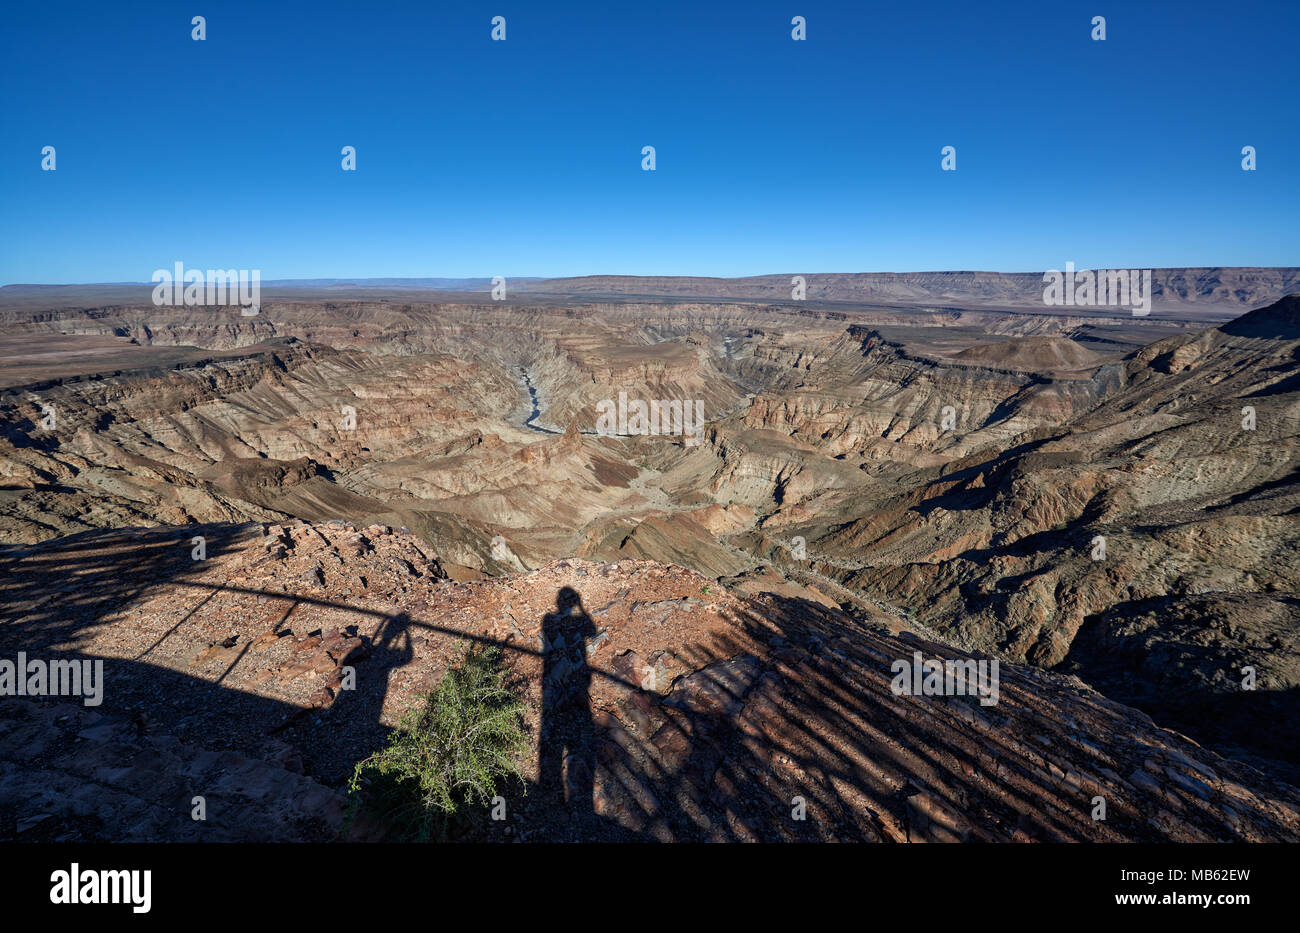 landscape of Fish River Canyon, Namibia, Africa - Stock Image